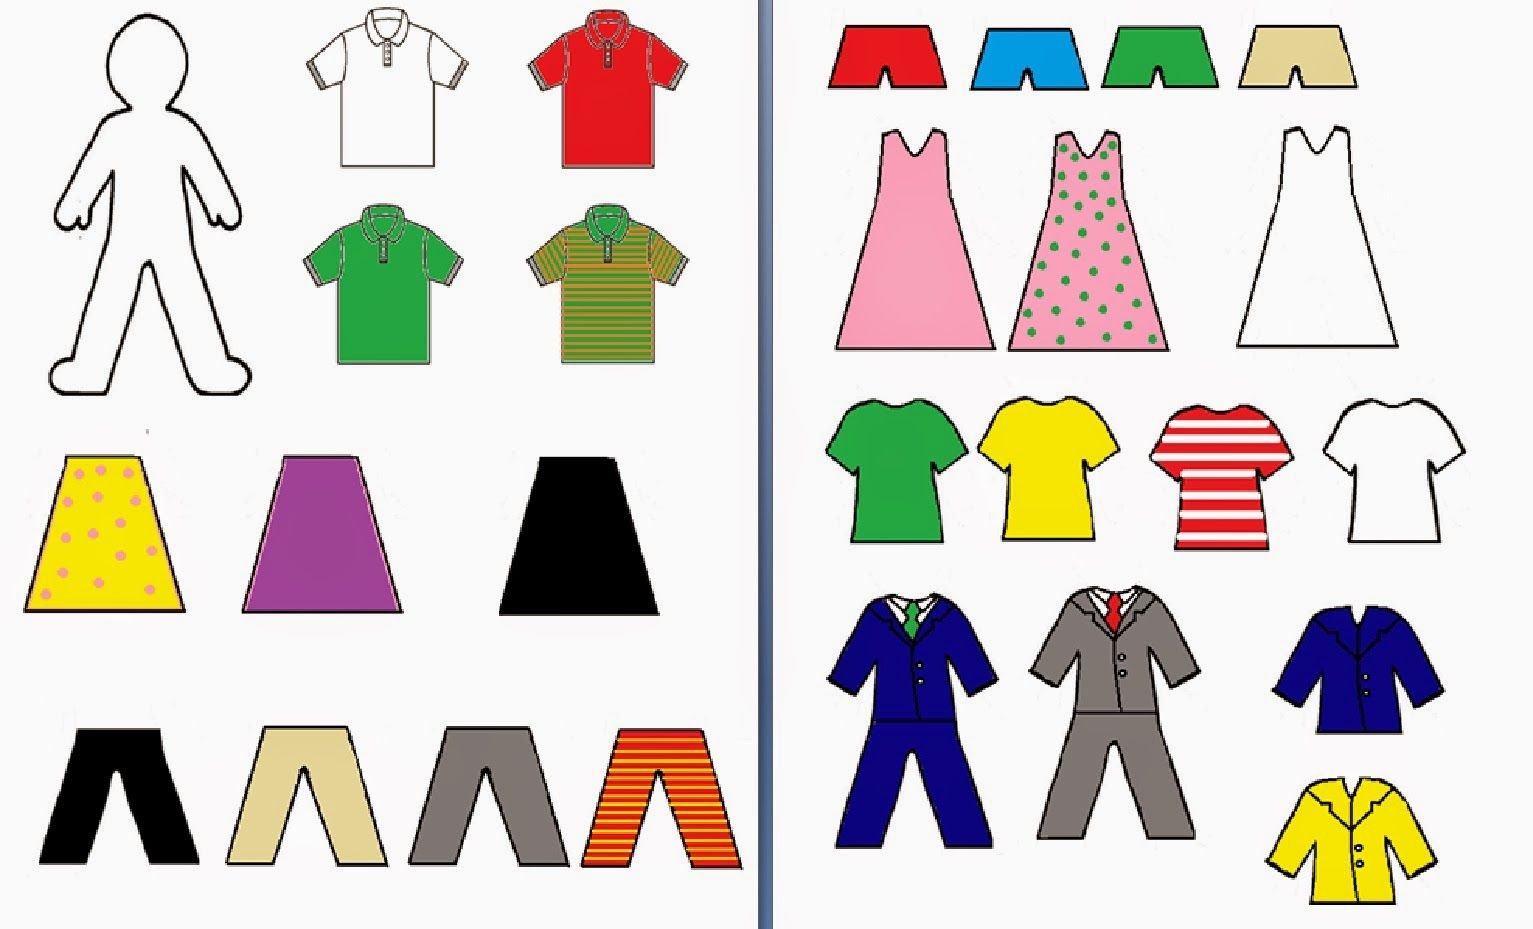 Paper Dolls To Practice Clothing